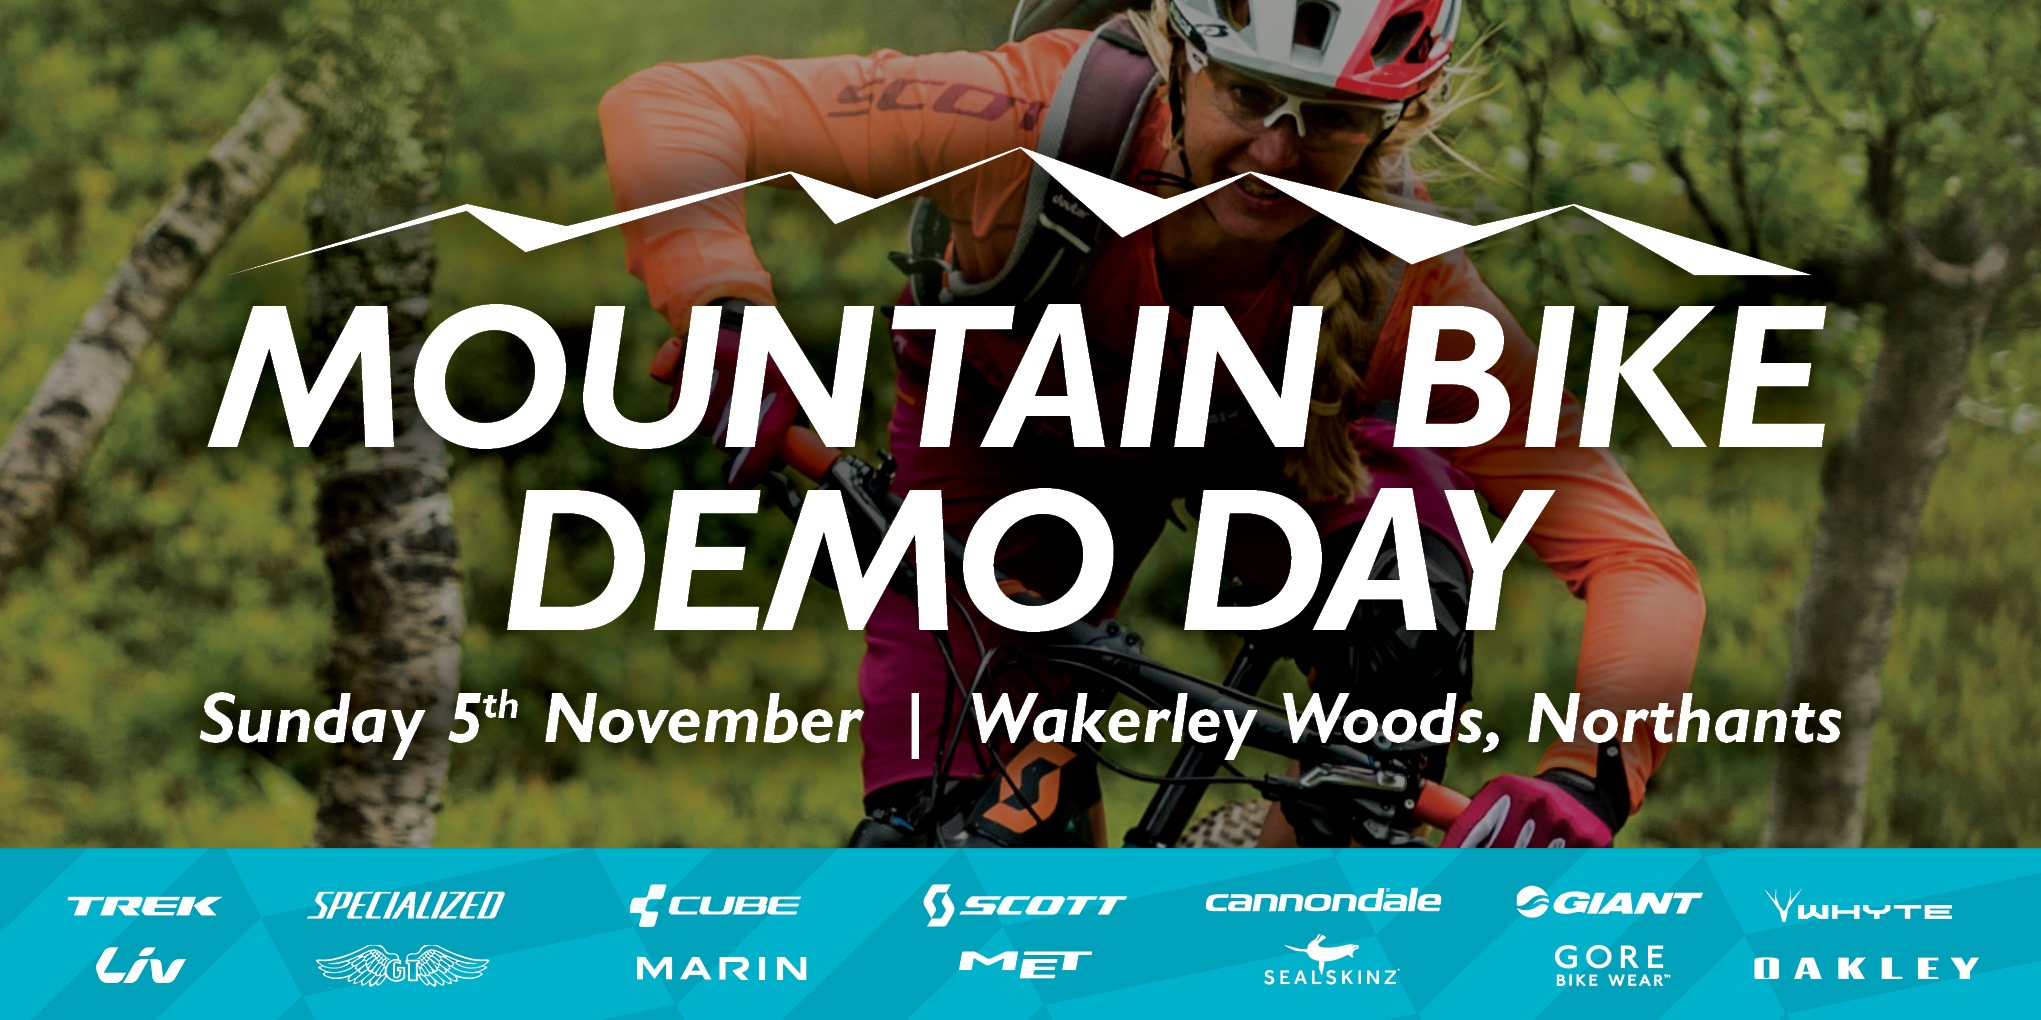 MTB_DEMO_DAY_EVENTBRITE_BANNER_14-09-17